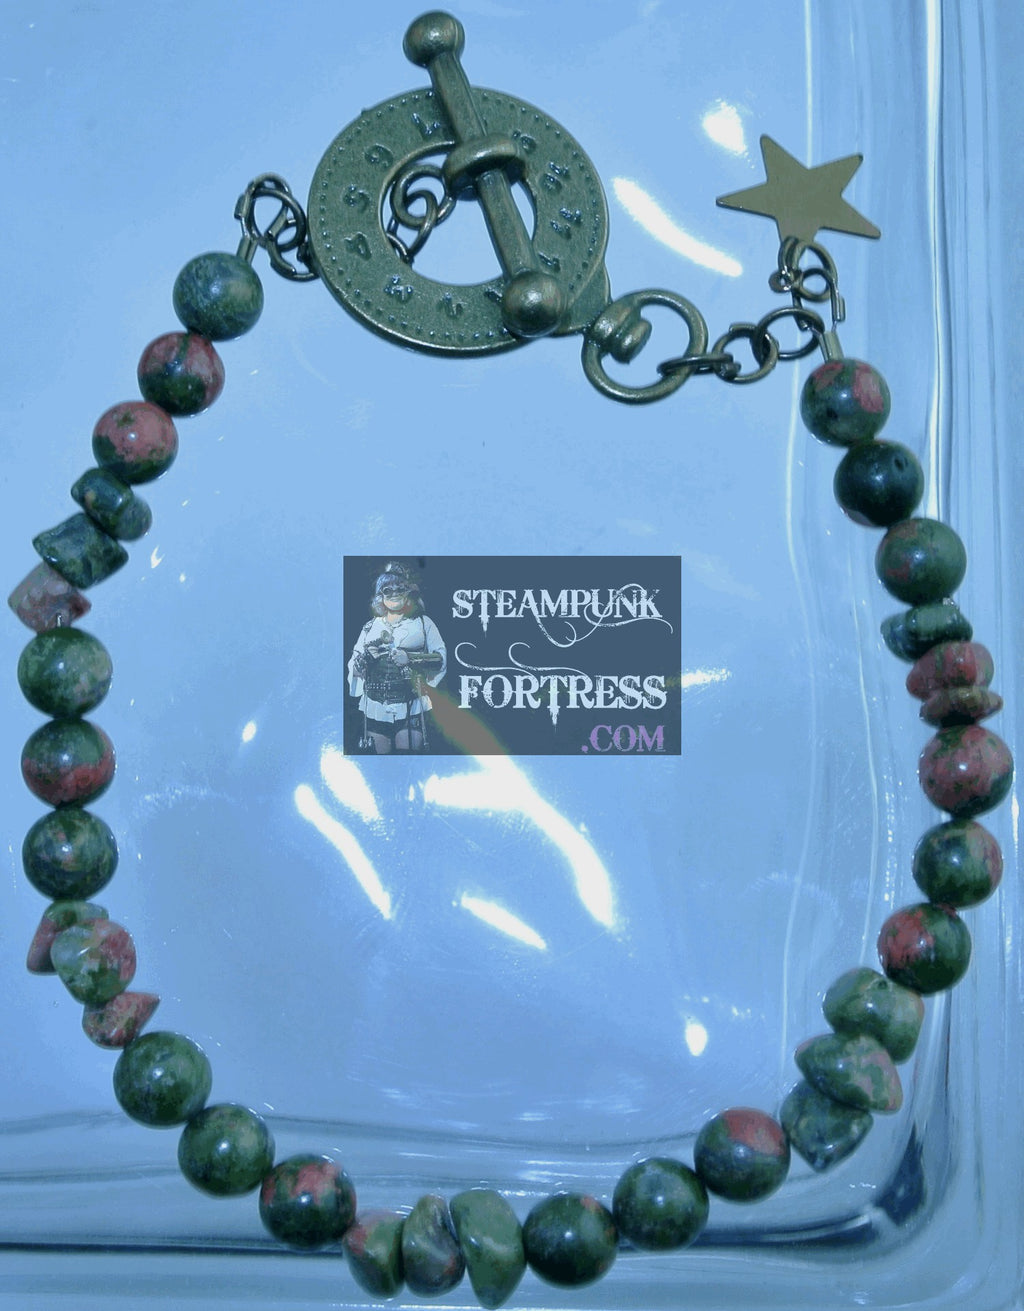 BRASS UNAKITE GEMSTONE 3 ROUNDS 3 CHIPS BRACELET SET AVAILABLE STARR WILDE STEAMPUNK FORTRESS